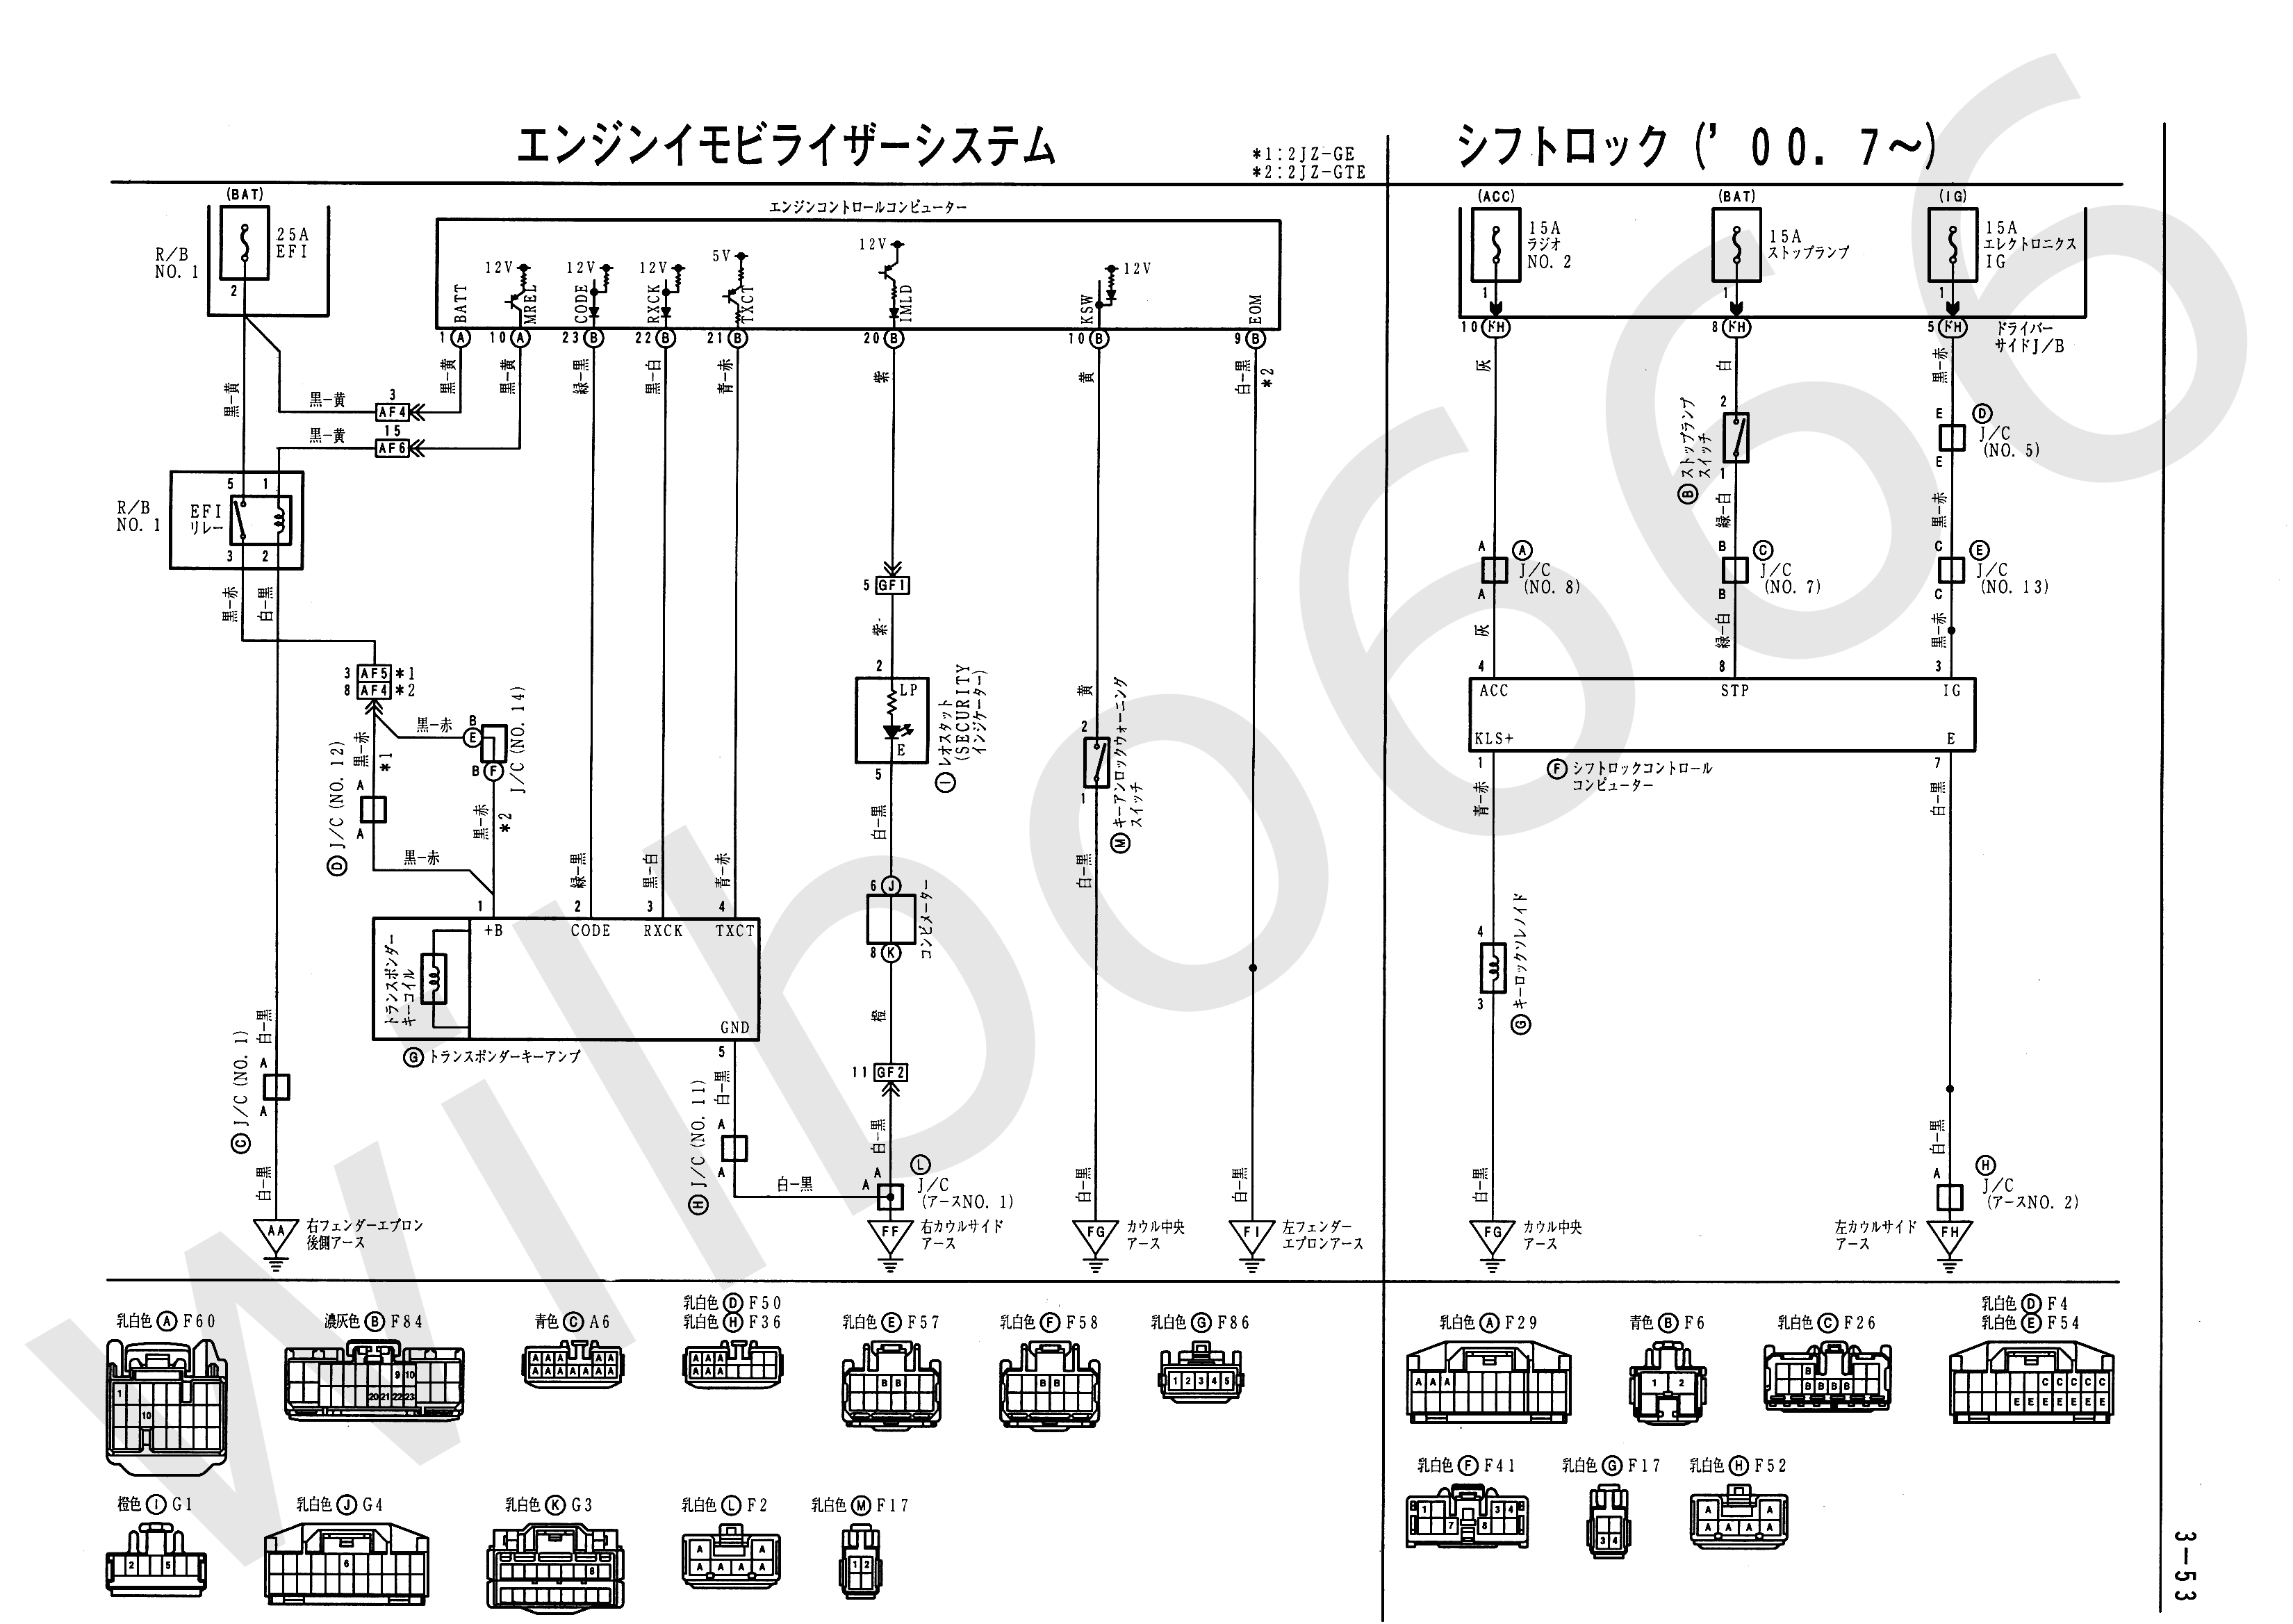 Wilbo666 2jz Gte Vvti Jzs161 Aristo Engine Wiring Fig 2 Coolant Temperature Ect Sensor Diagram